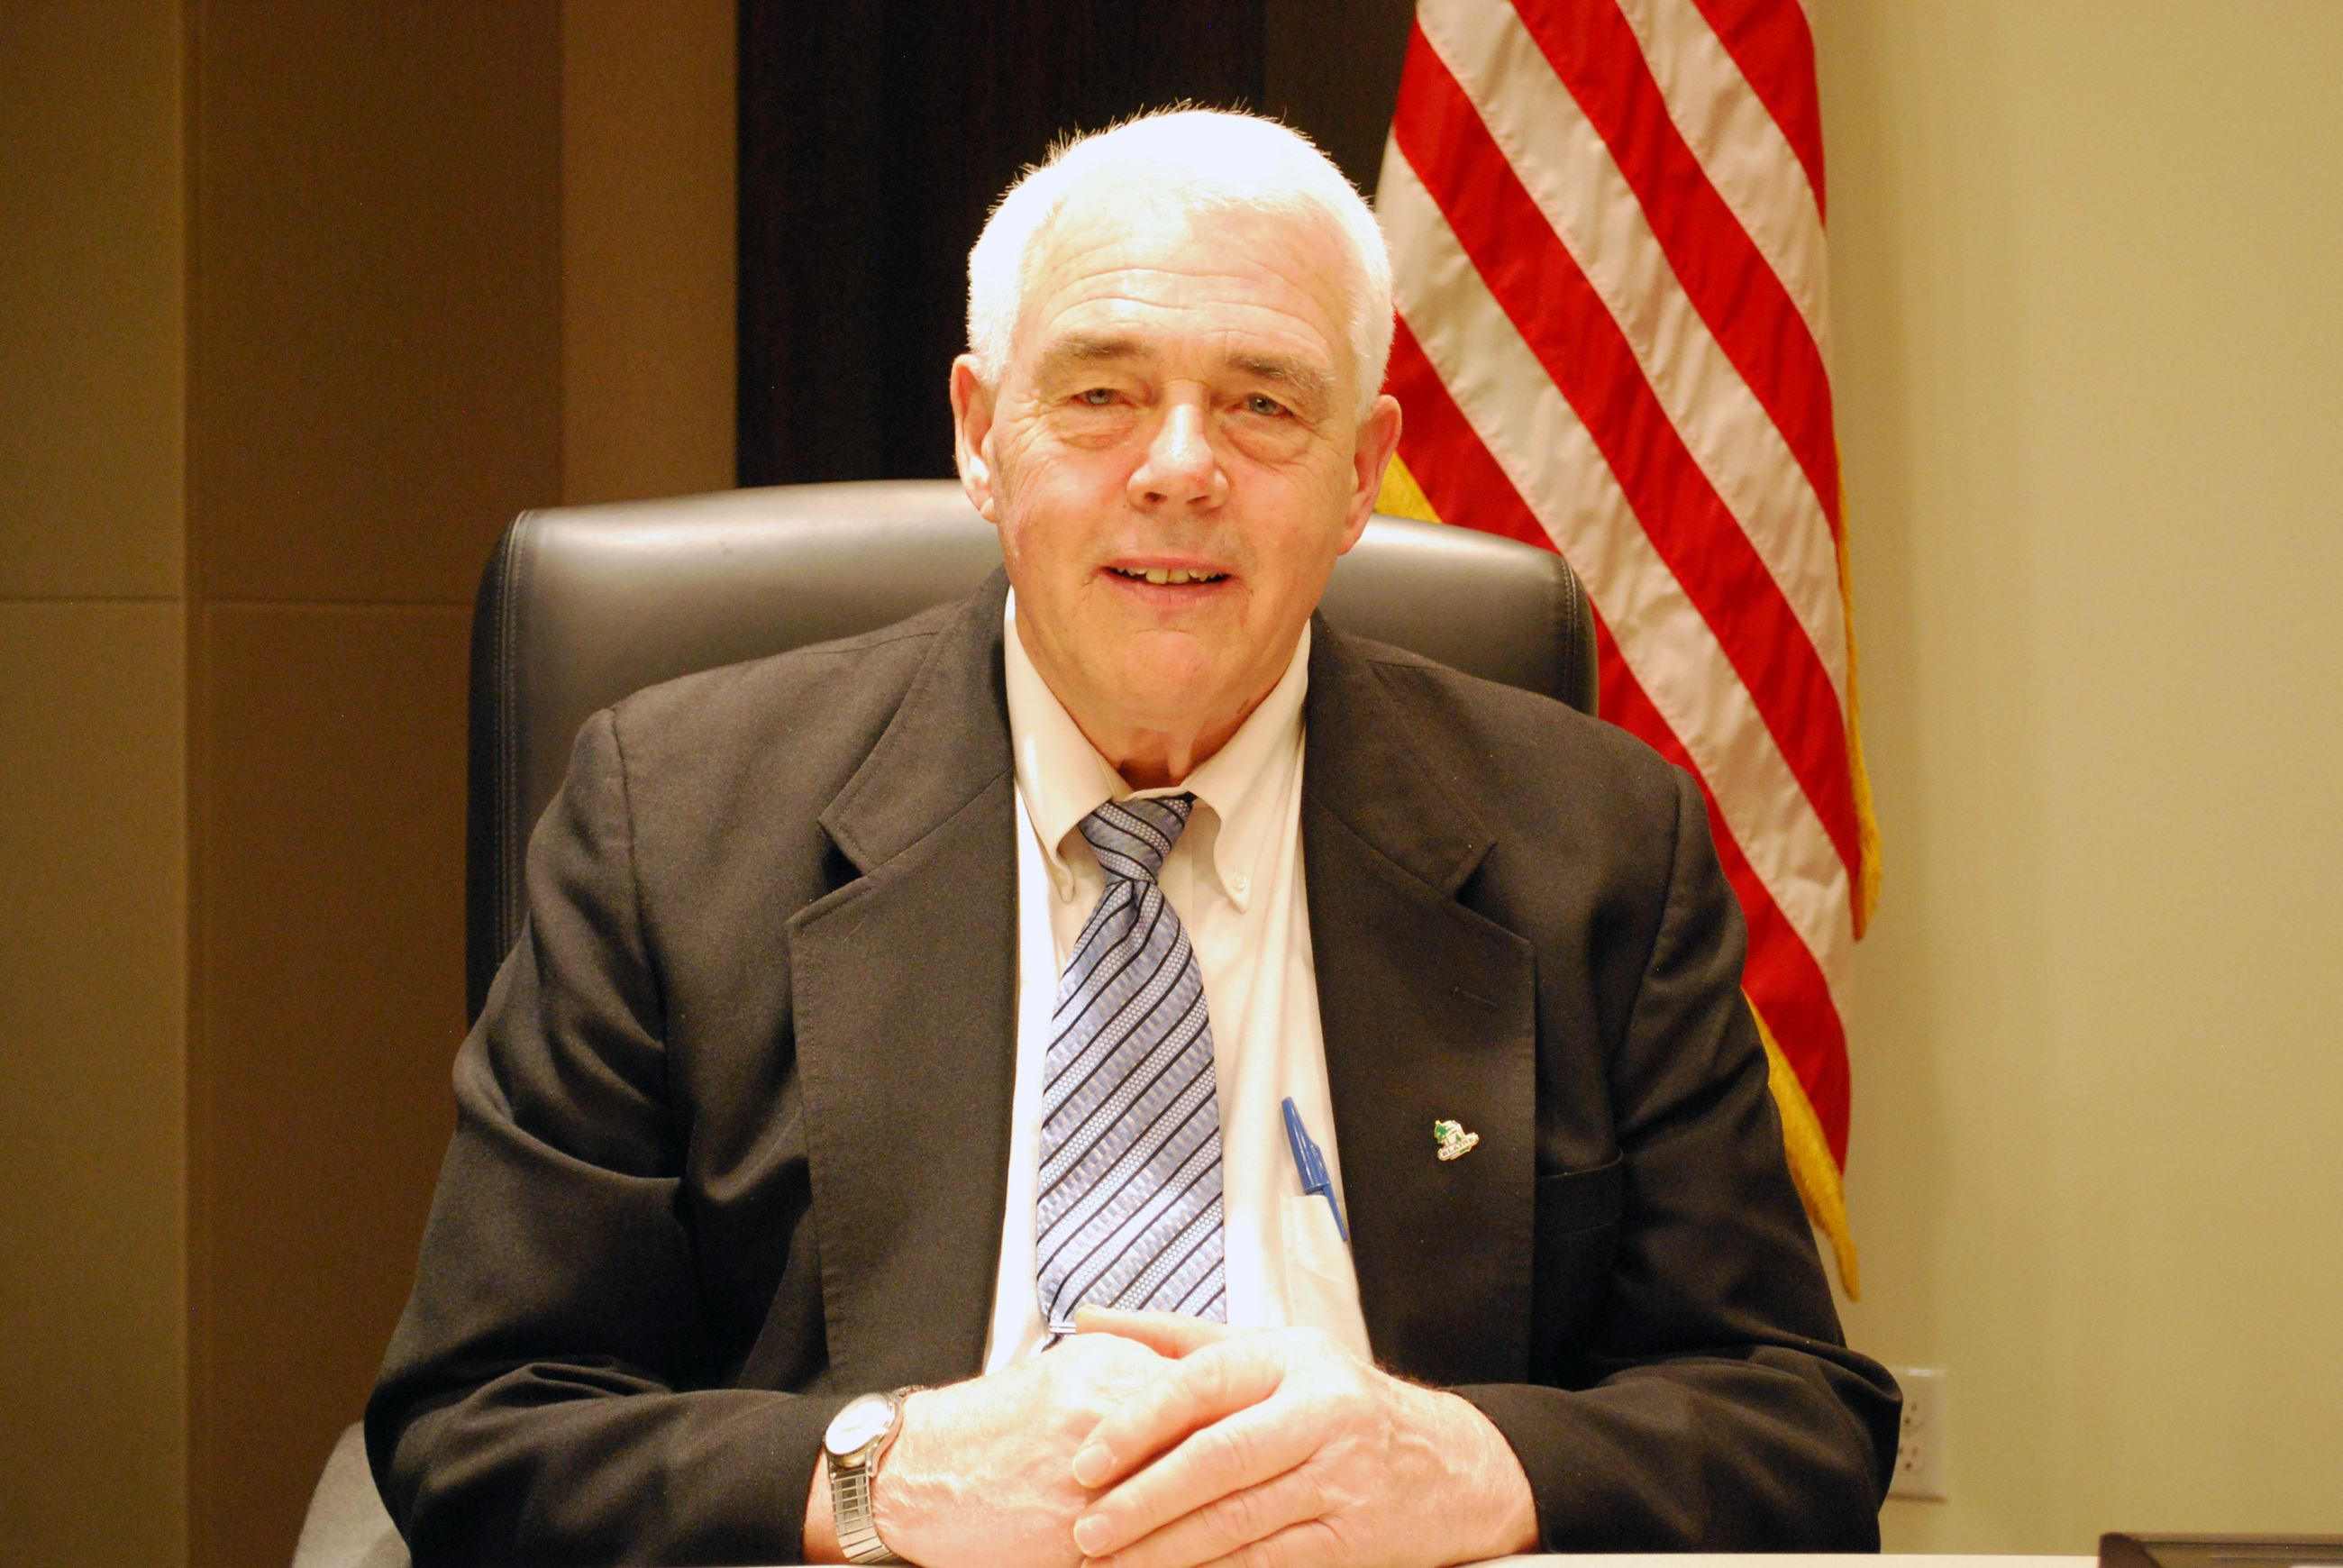 Mayor Tom Ryan headshot